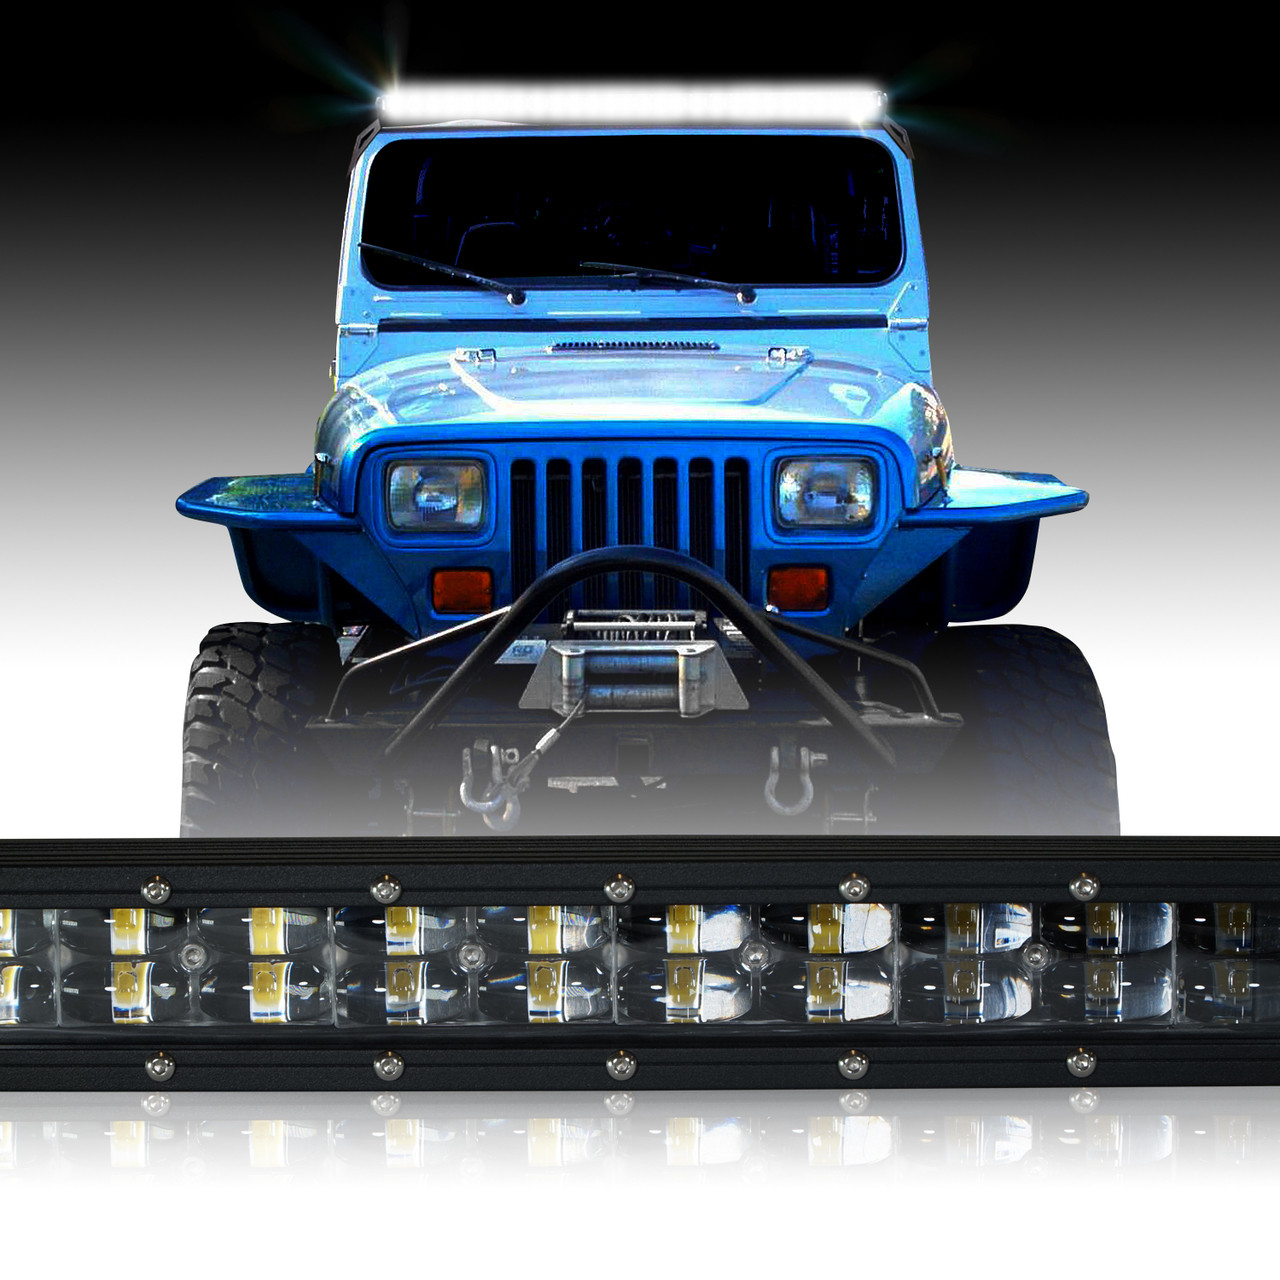 jeep wrangler wiring harness gallery of cars and accessories jeep wrangler wiring harness gallery of cars and accessories jeep wrangler wiring harness gallery of cars and accessories